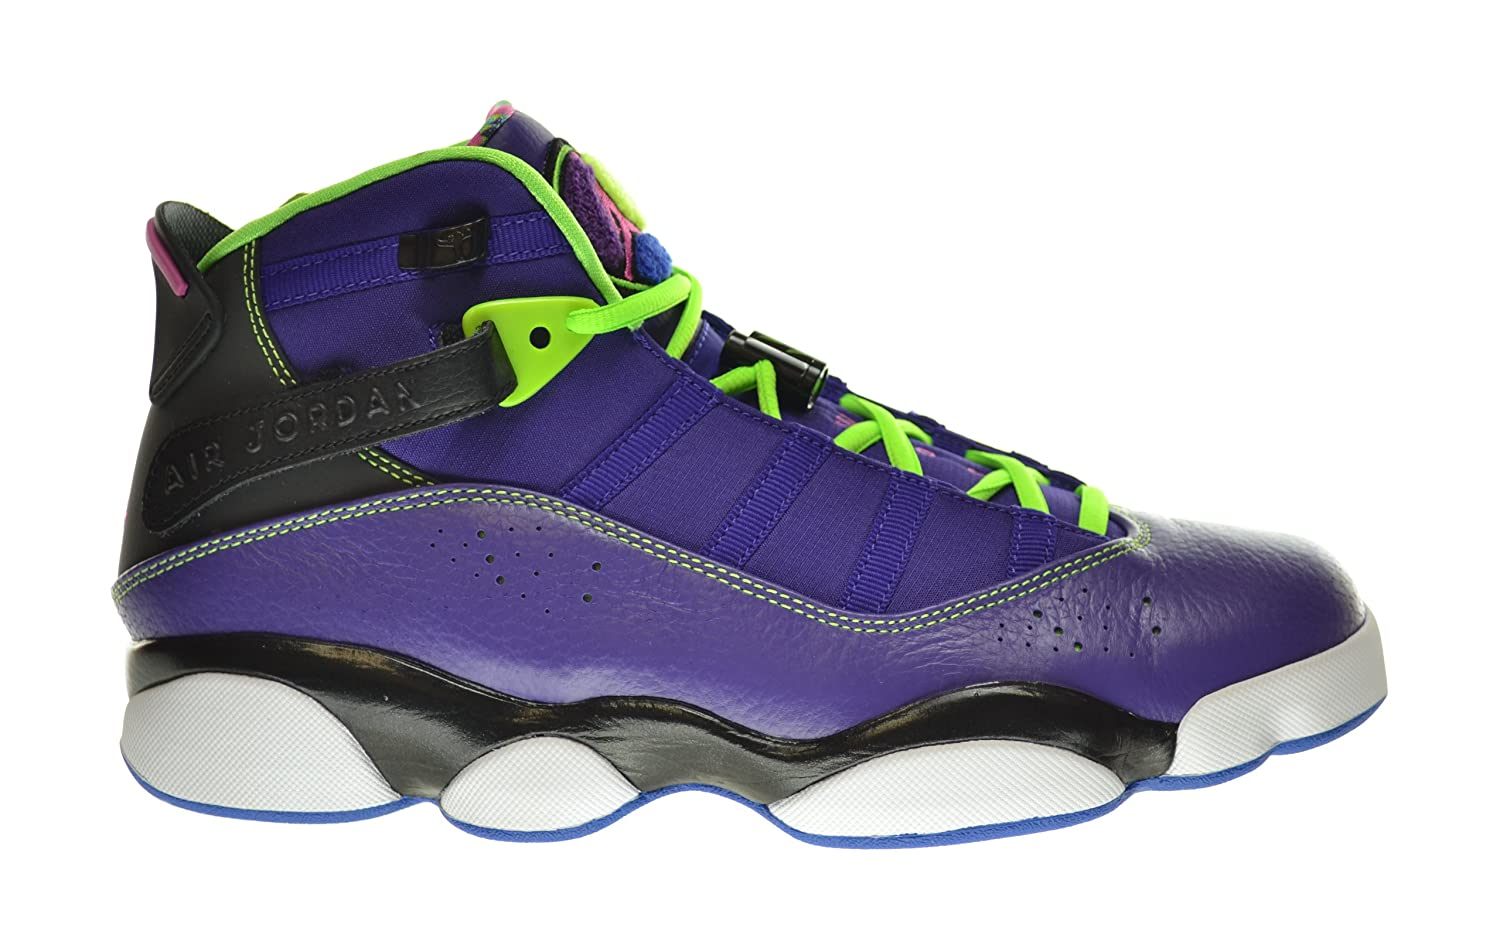 Nike Jordan 6 Rings Men Shoes Sneakers Color: Court Purple/Black/Flash Lime